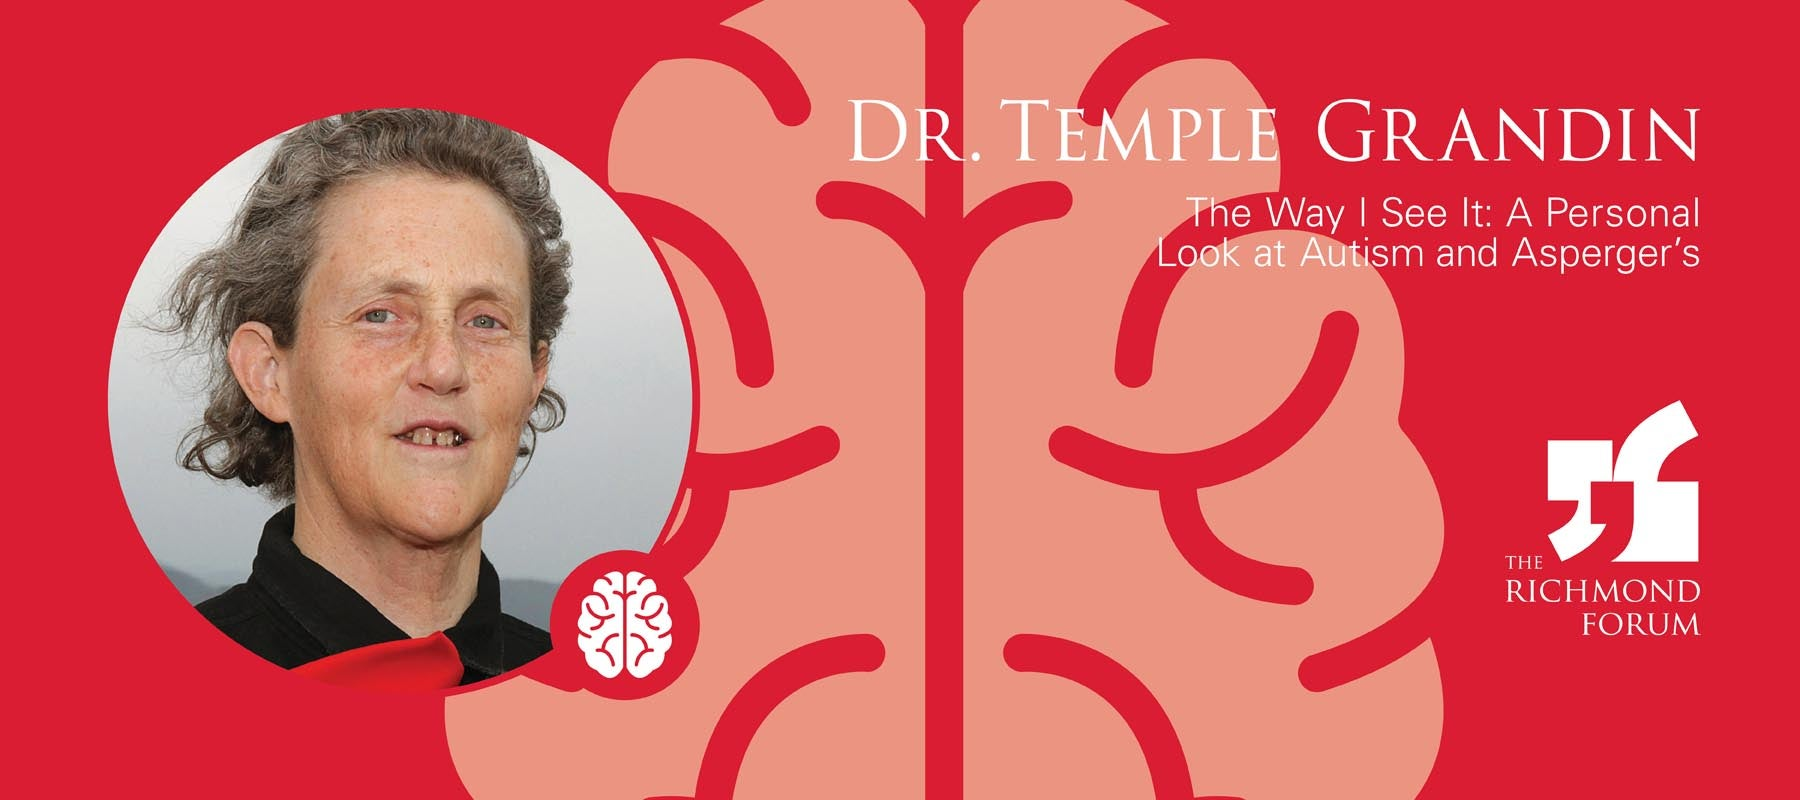 The Richmond Forum Presents Dr. Temple Grandin